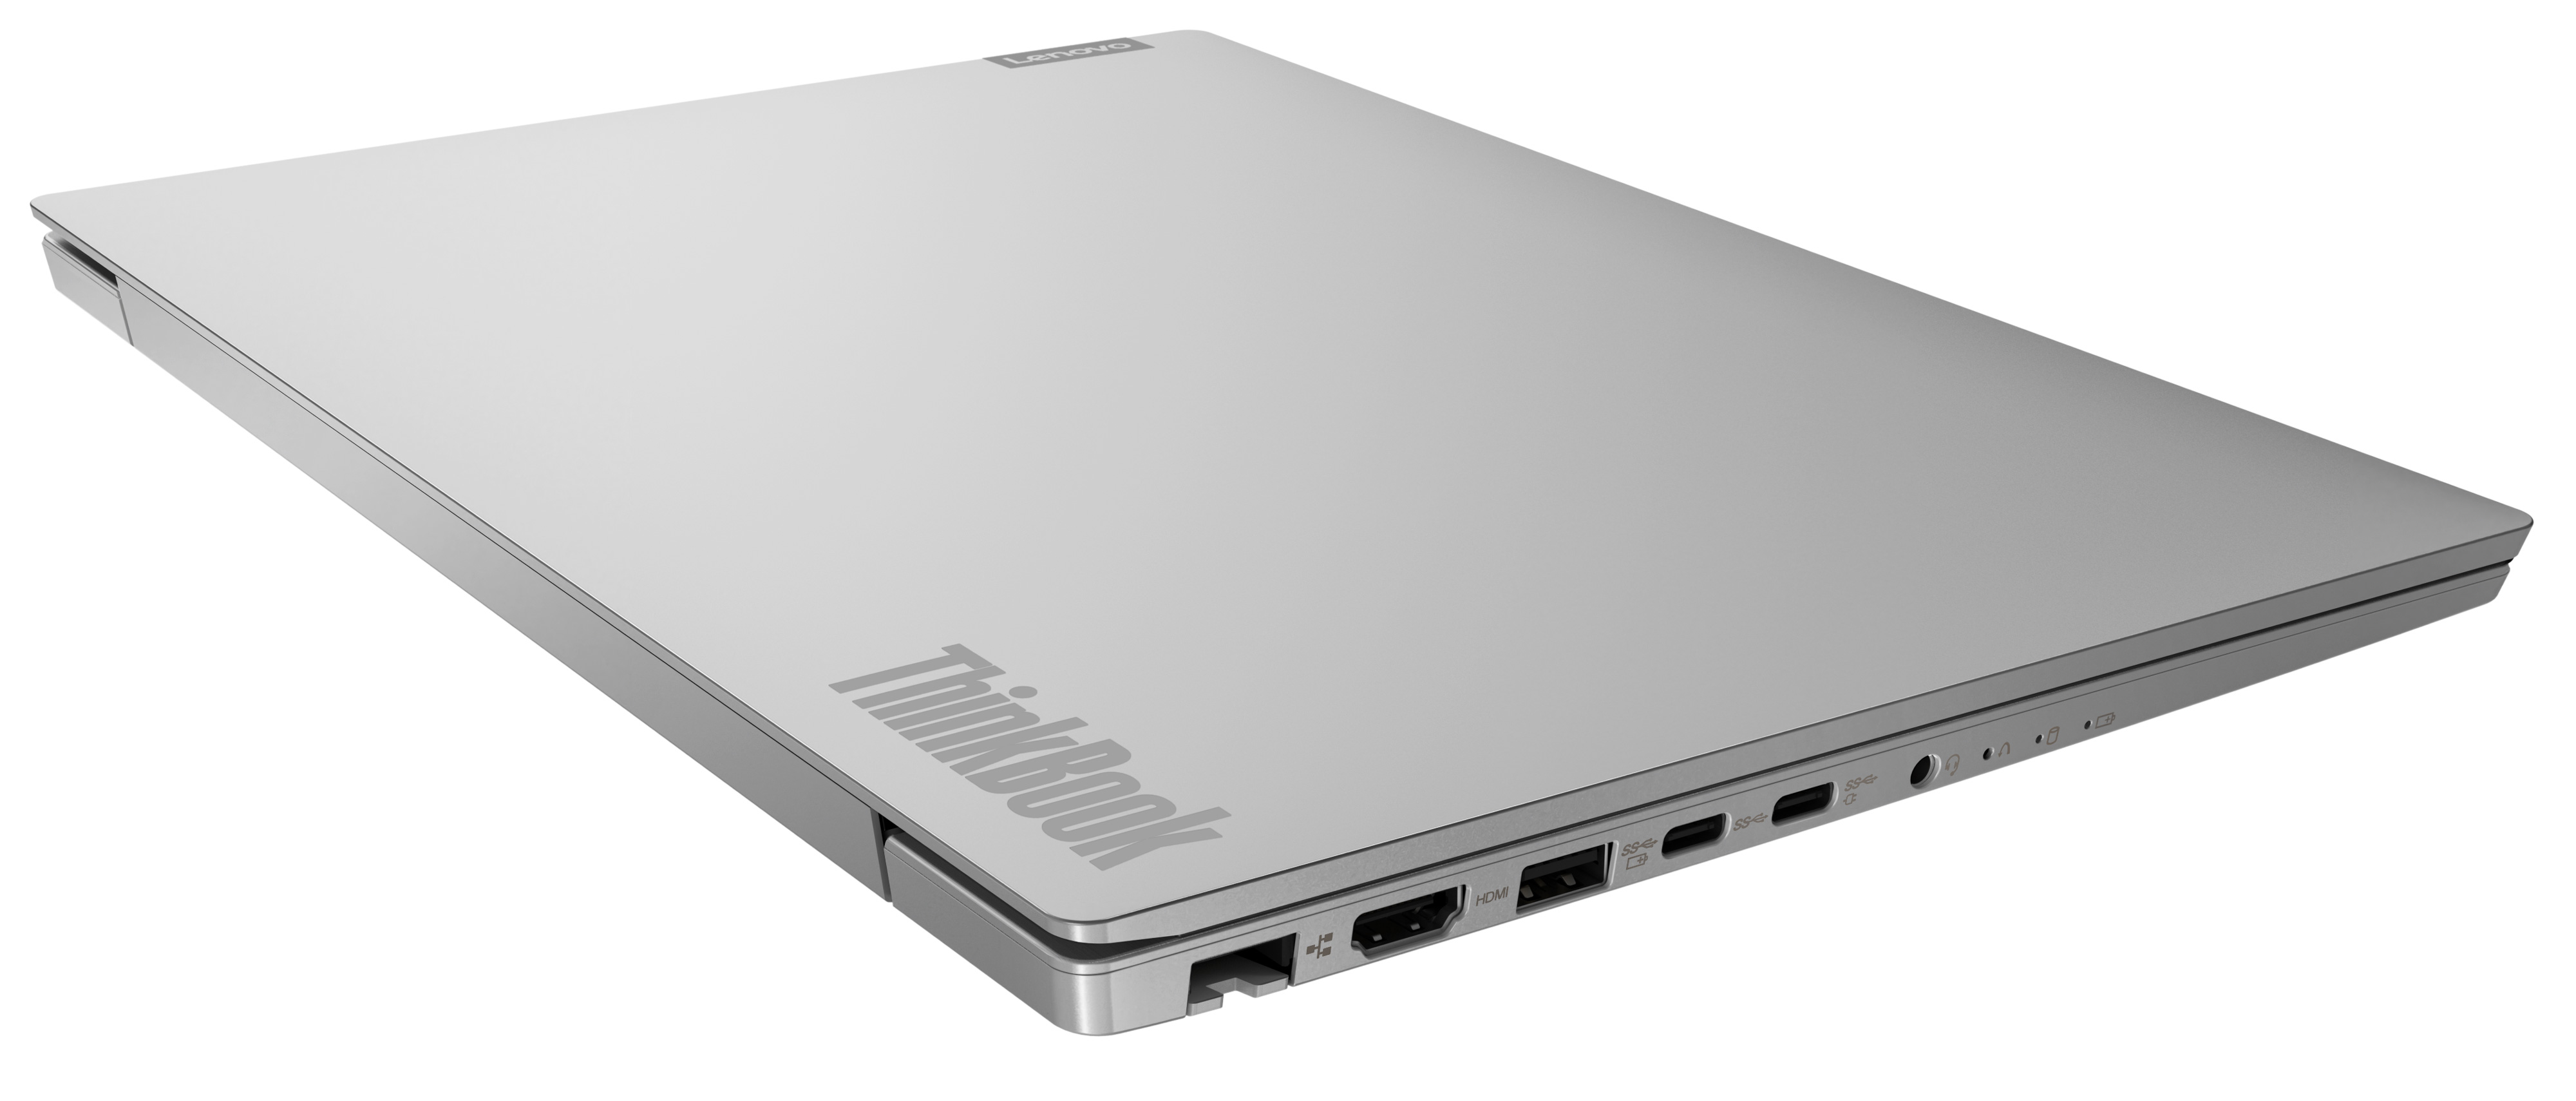 Фото  Ноутбук ThinkBook 14-IIL Mineral Grey (20SL00P1RU)